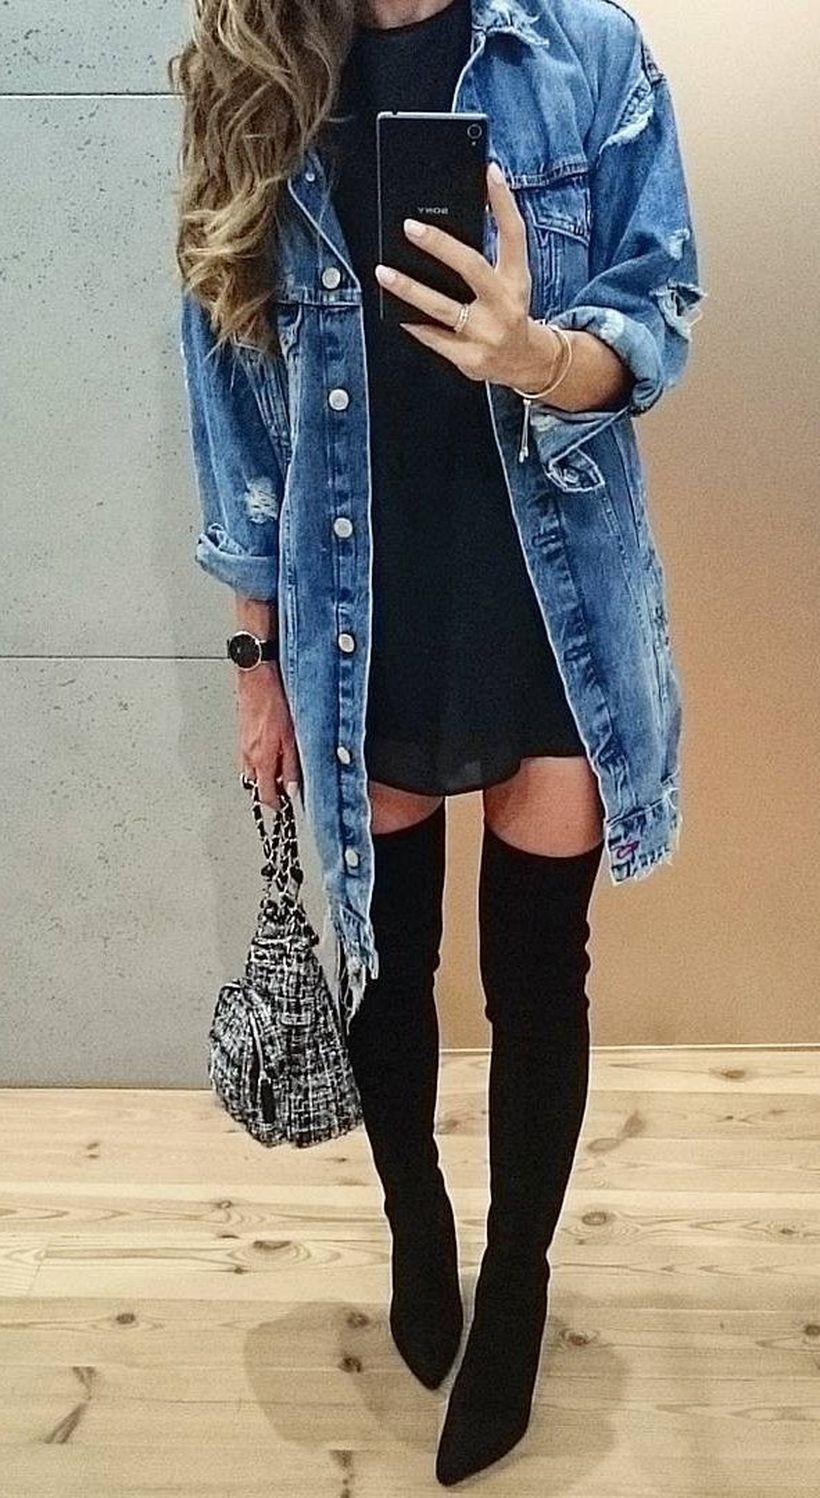 Casual fall fashions trend inspirations 2017 24 - Fashion Best